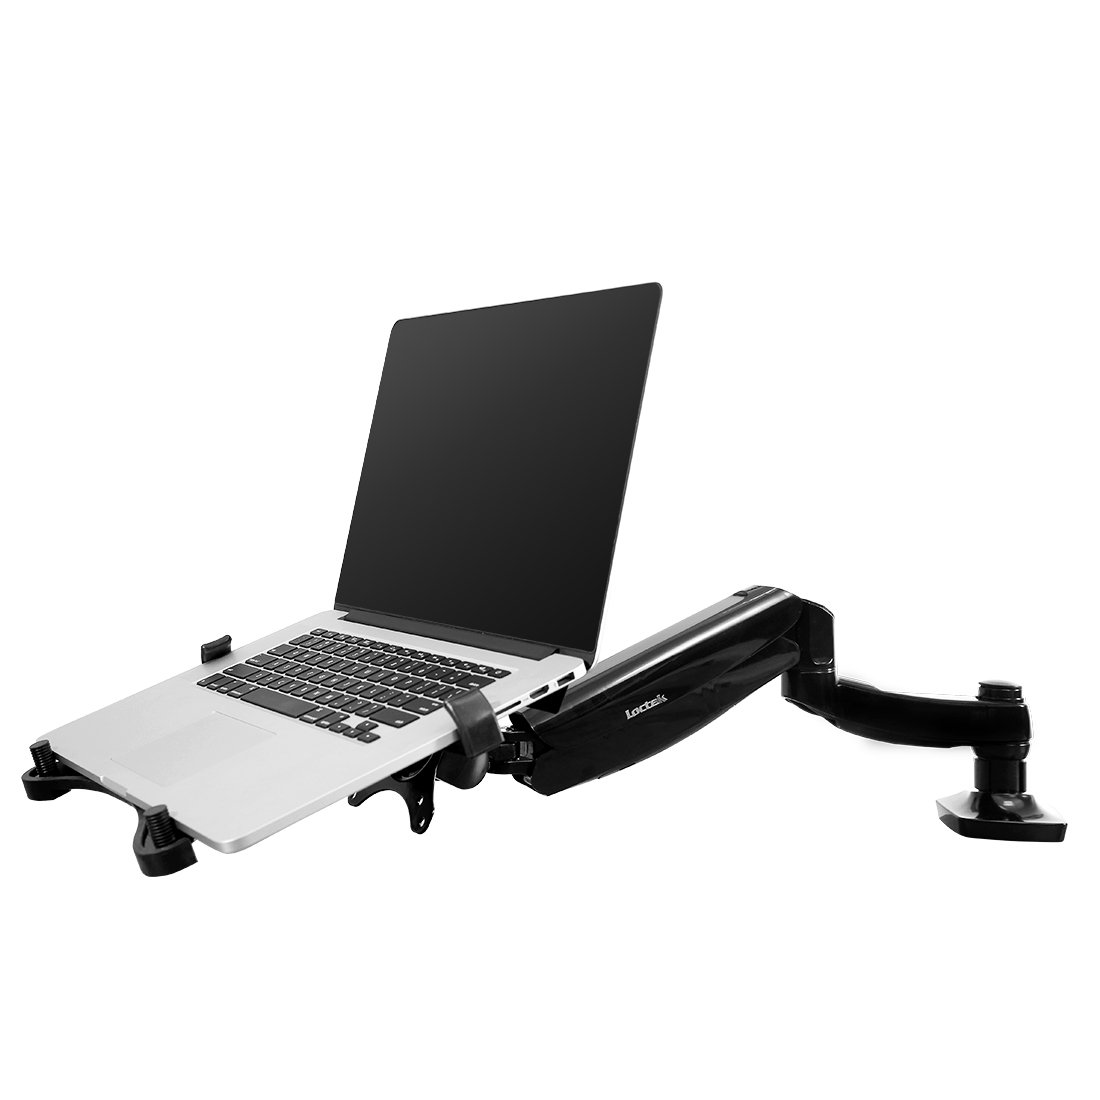 FLEXIMOUNTS 2-in-1 Monitor Arm Laptop Mount Stand Swivel Gas Spring LCD arm Desk mounts for 10''-24'' Computer Screen Monitor/ 11-17.3 inch Notebook